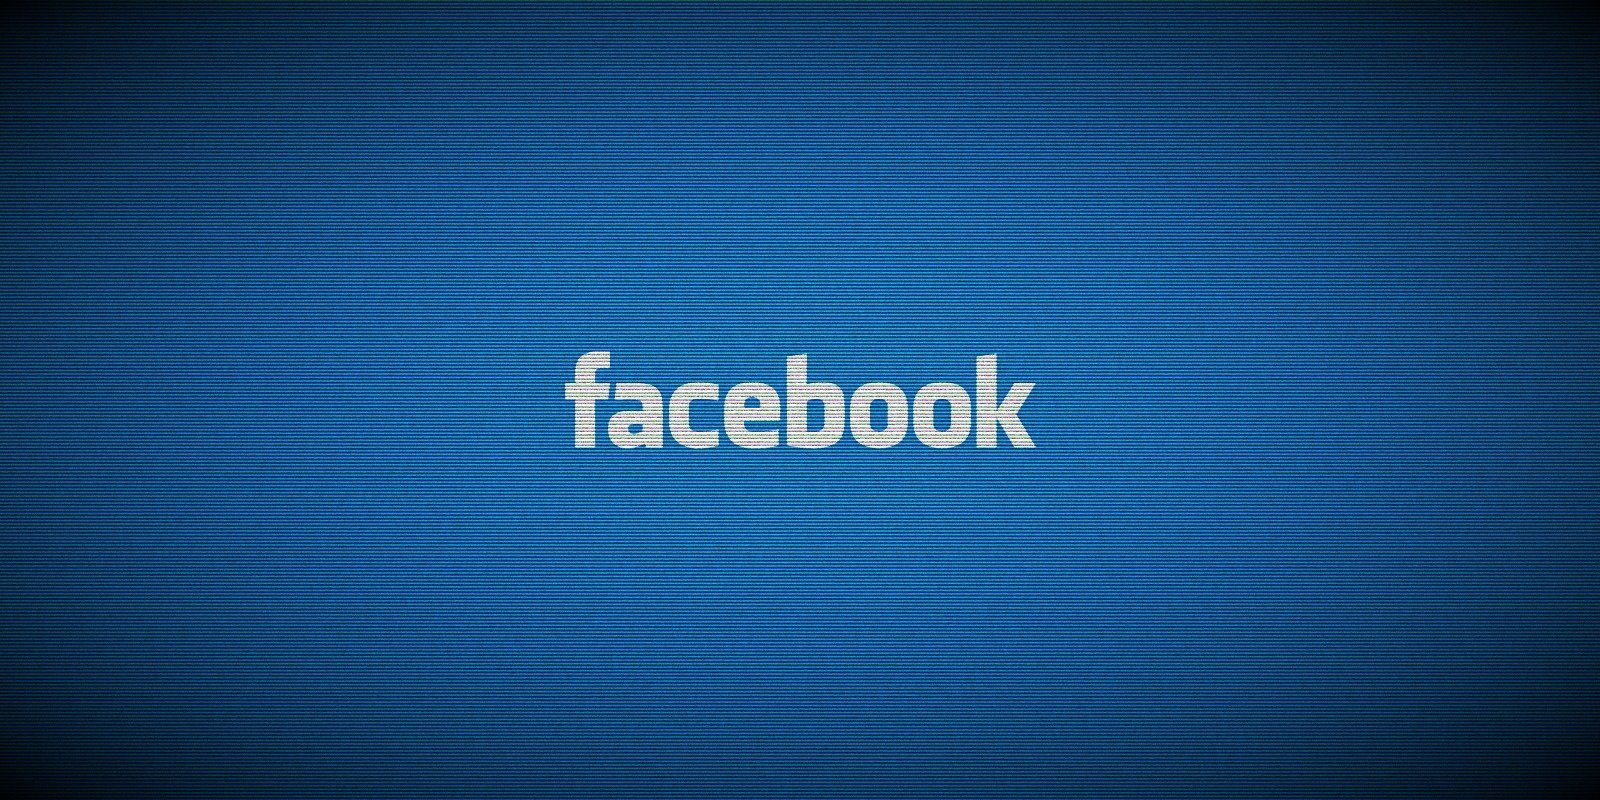 Facebook Users Were Mass-Logged Out Friday By Configuration Change